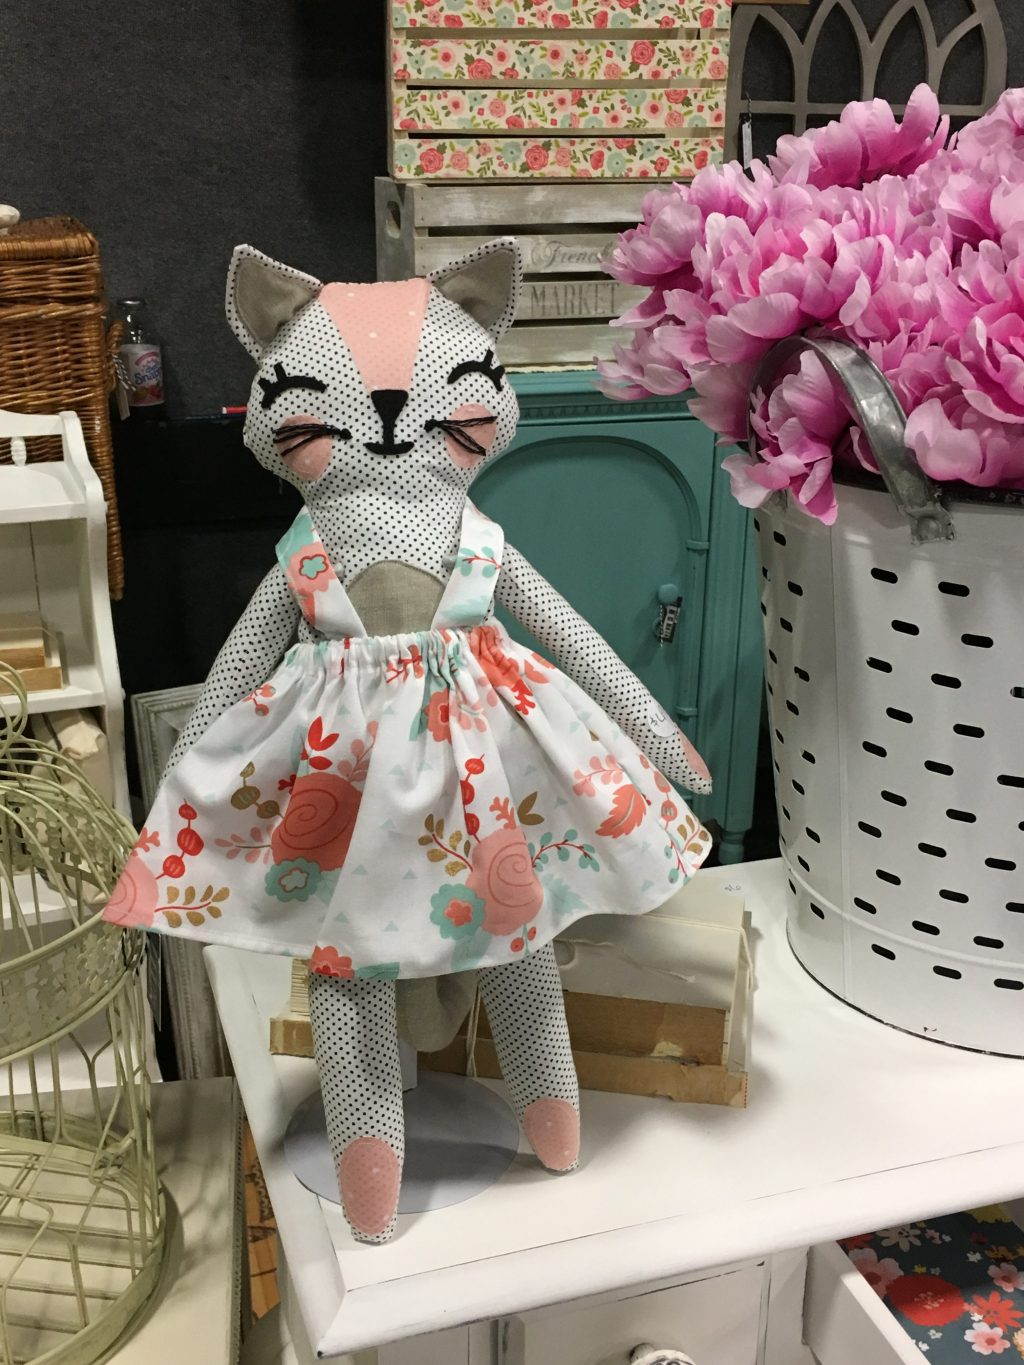 Thread and Cloth Studio handmade dolls - by Girl in the Garage